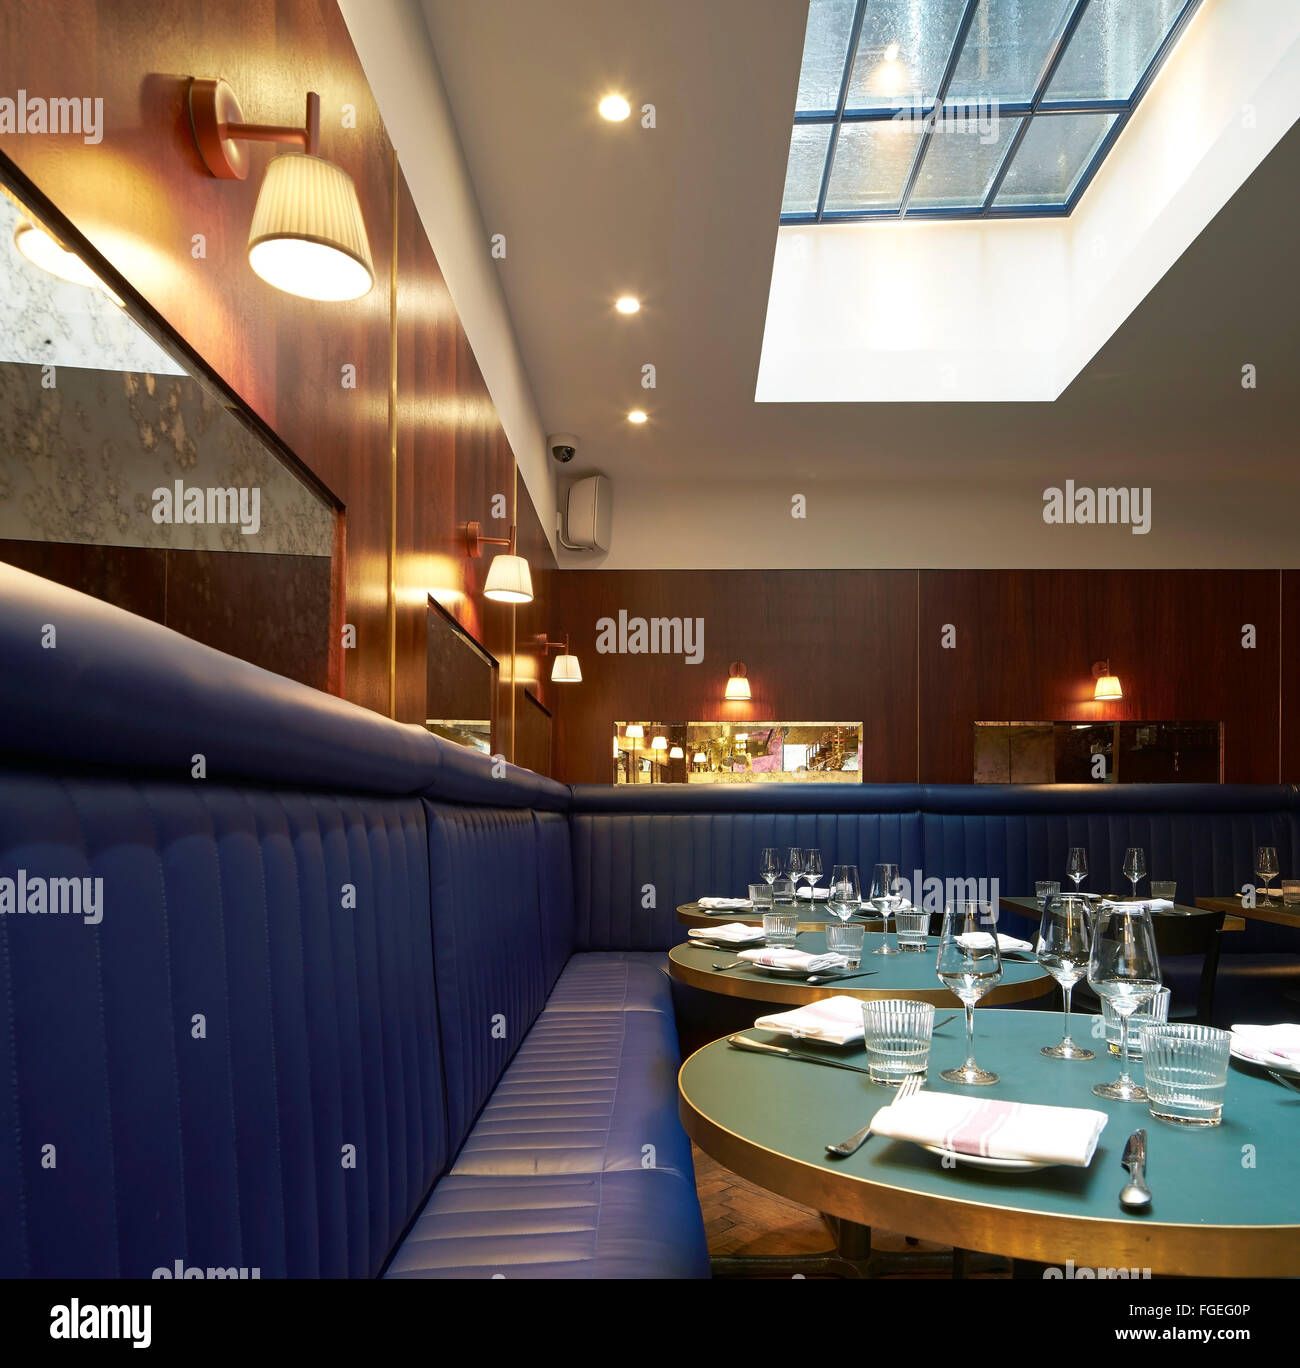 Dining Room With Skylight And Upholstered Bench Seating The Palomar Restaurant London United Kingdom Architect Gundry Duc